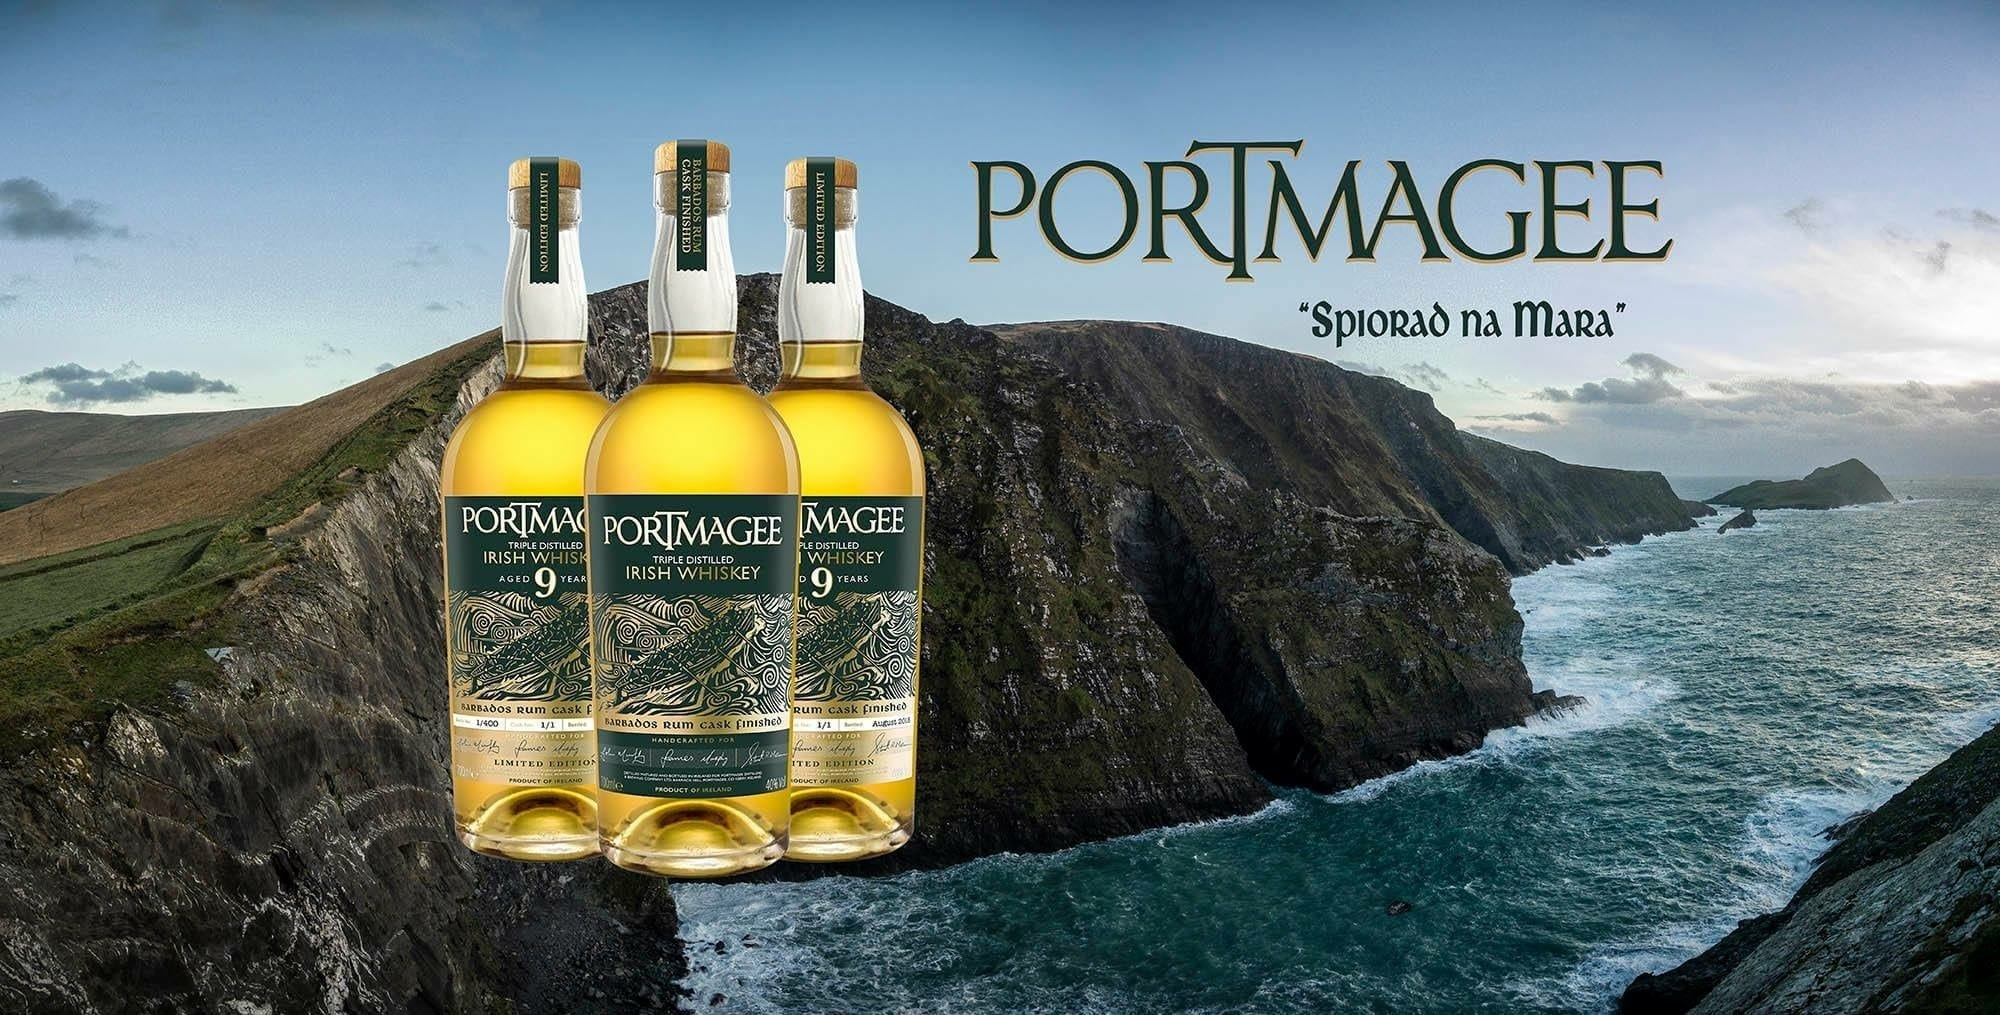 Portmagee 9 Year Old Irish Whisky pārskats Stuart McNamara Irish Whisky Blogger